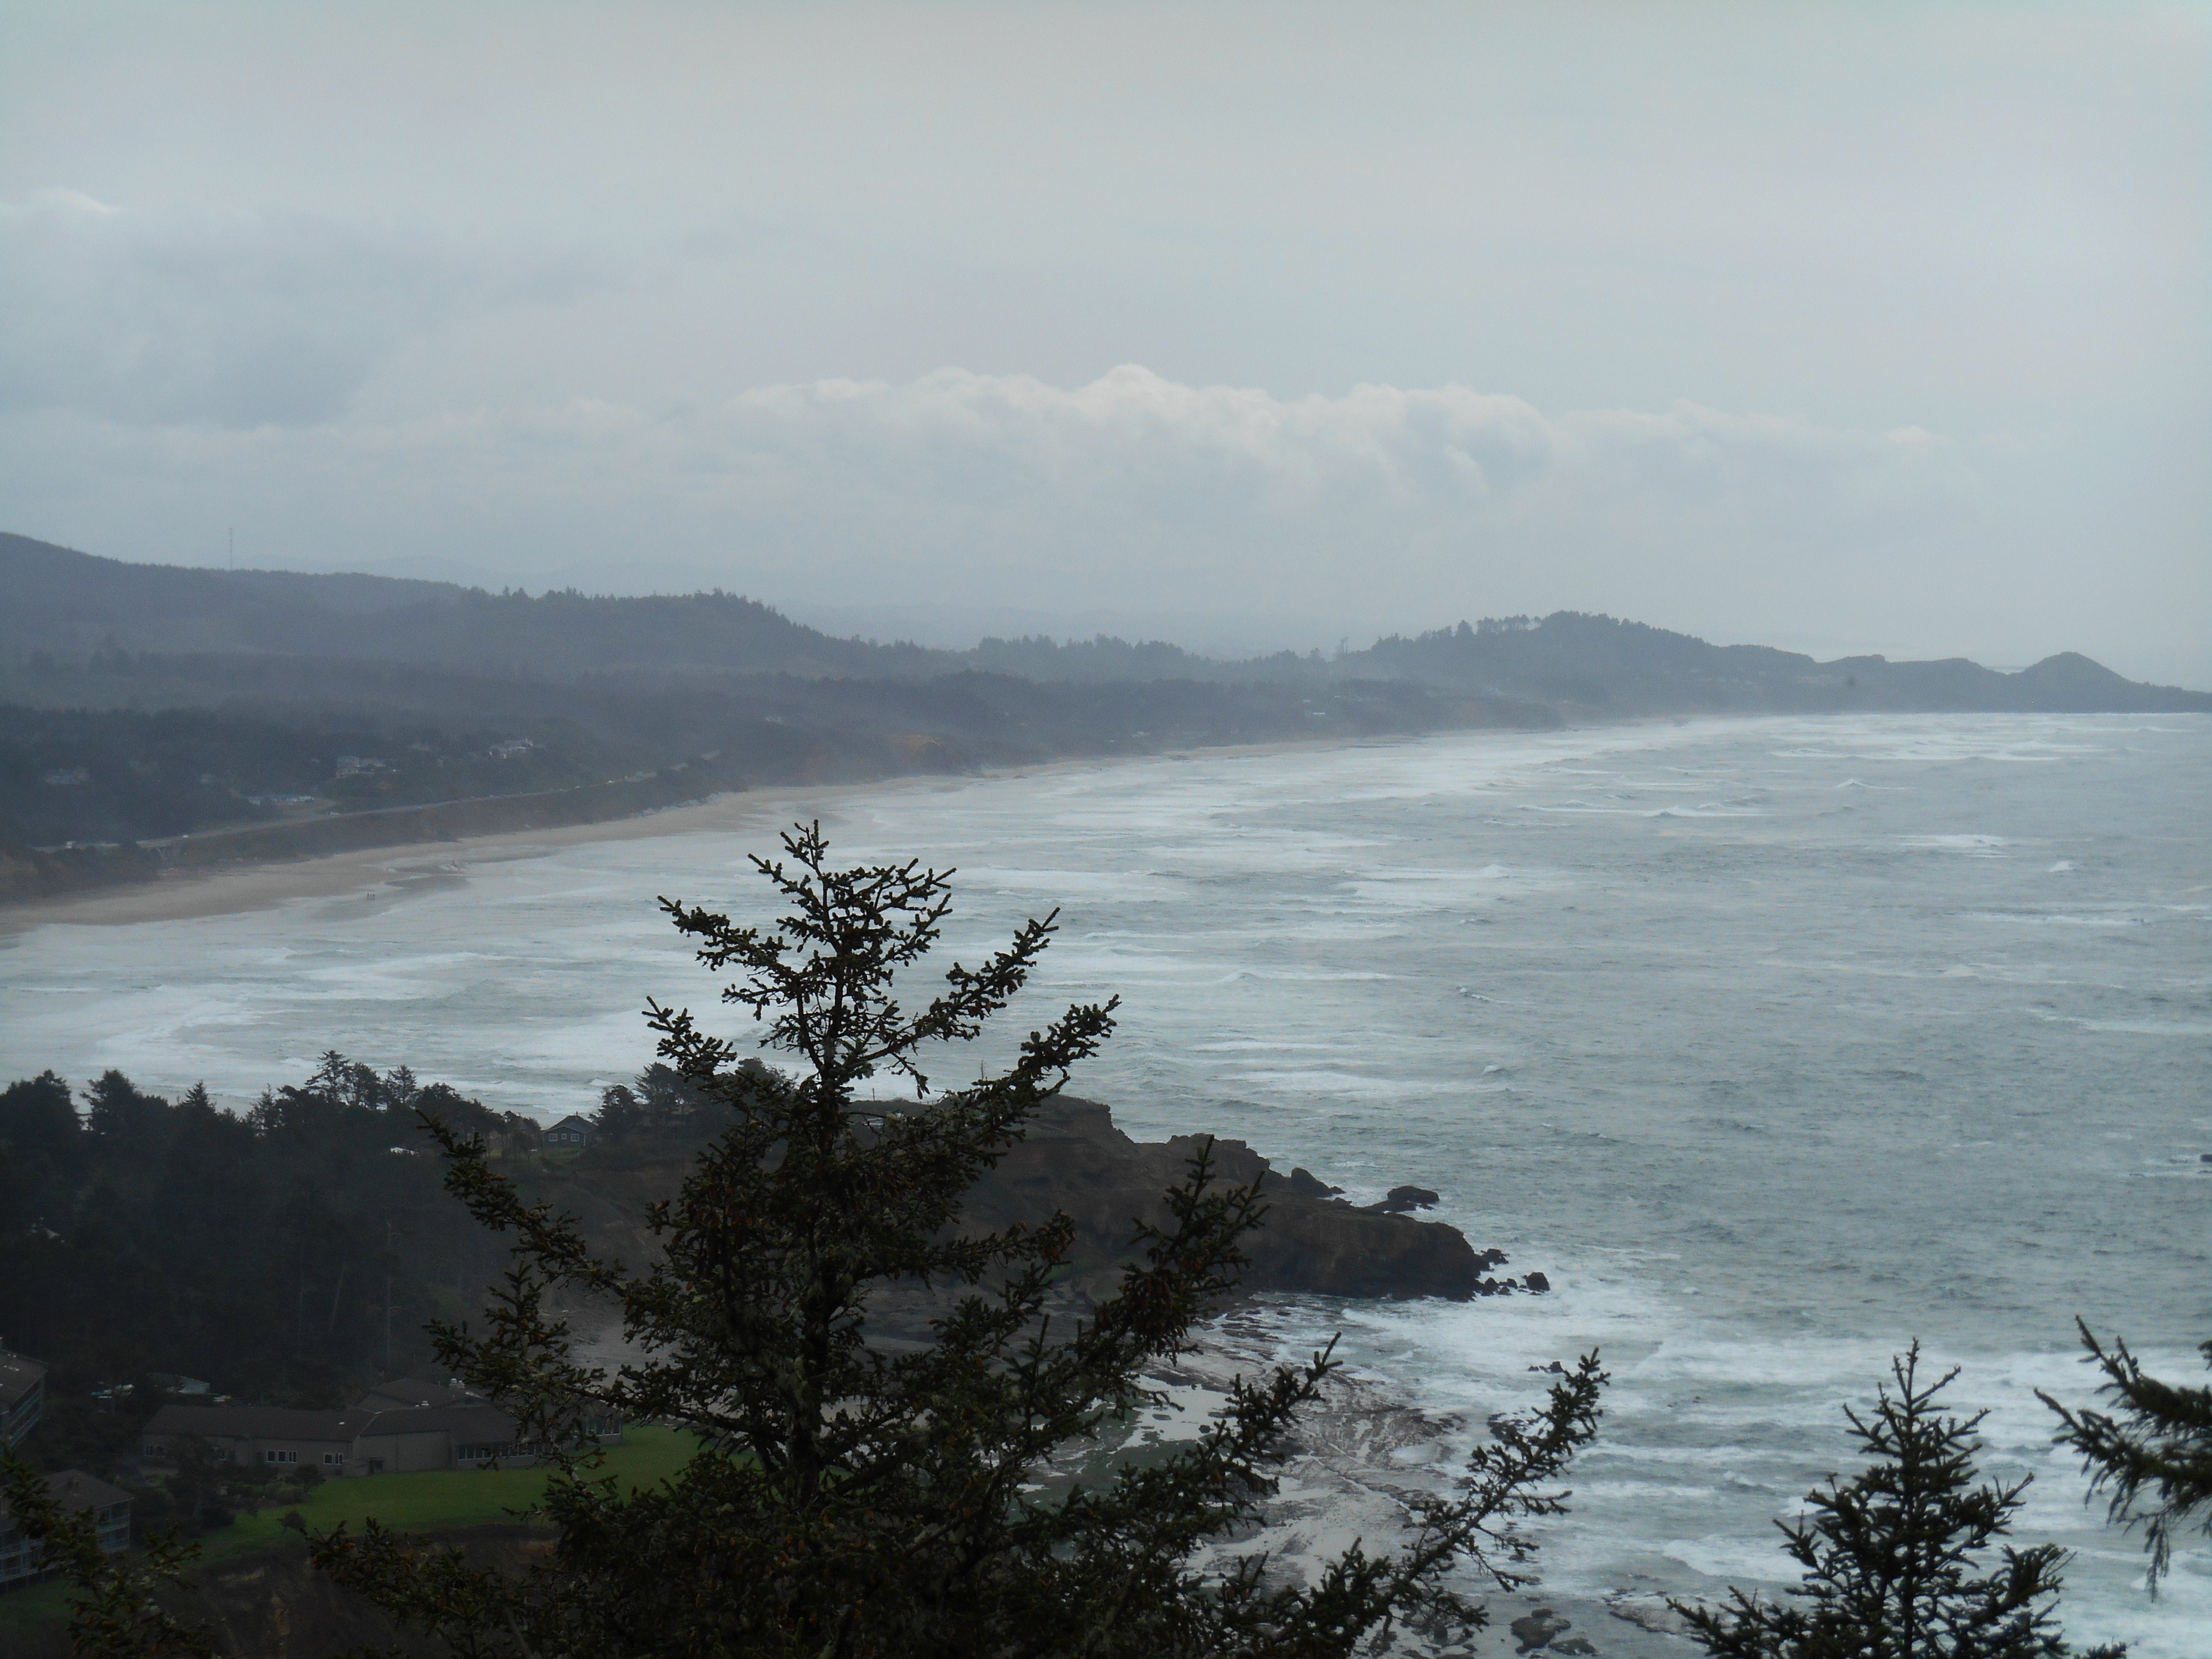 The view from Cape Foulweather, 500 feet above the Pacific.